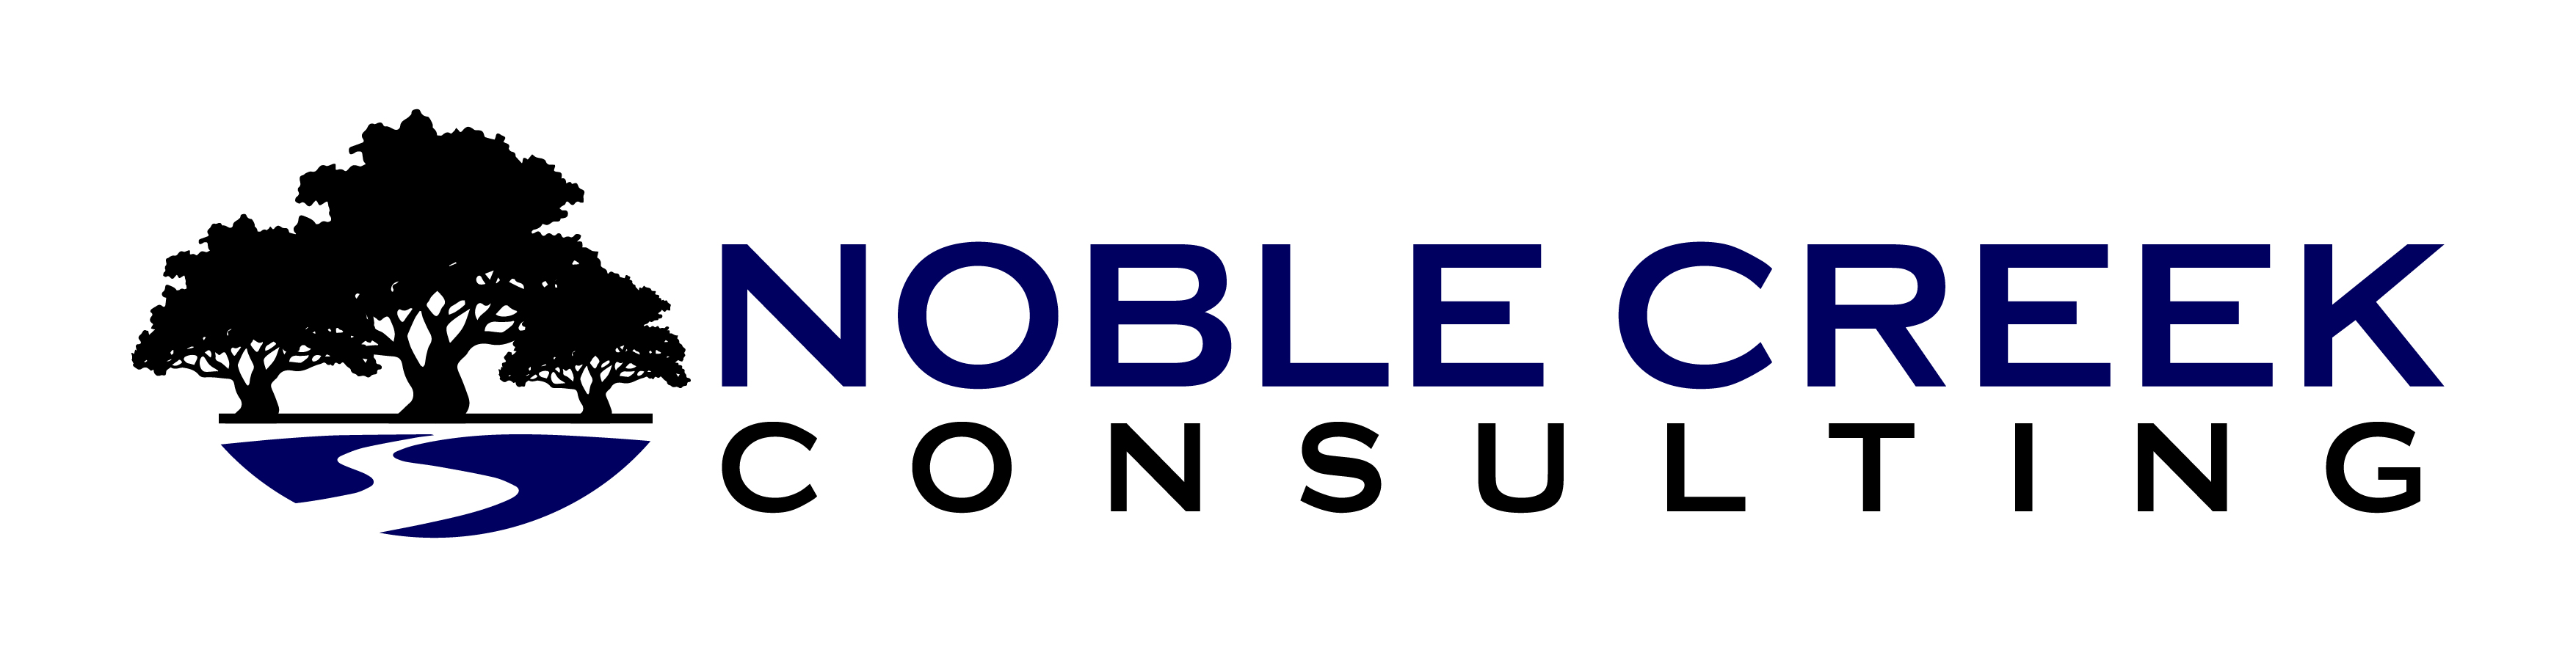 Noble Creek Consulting